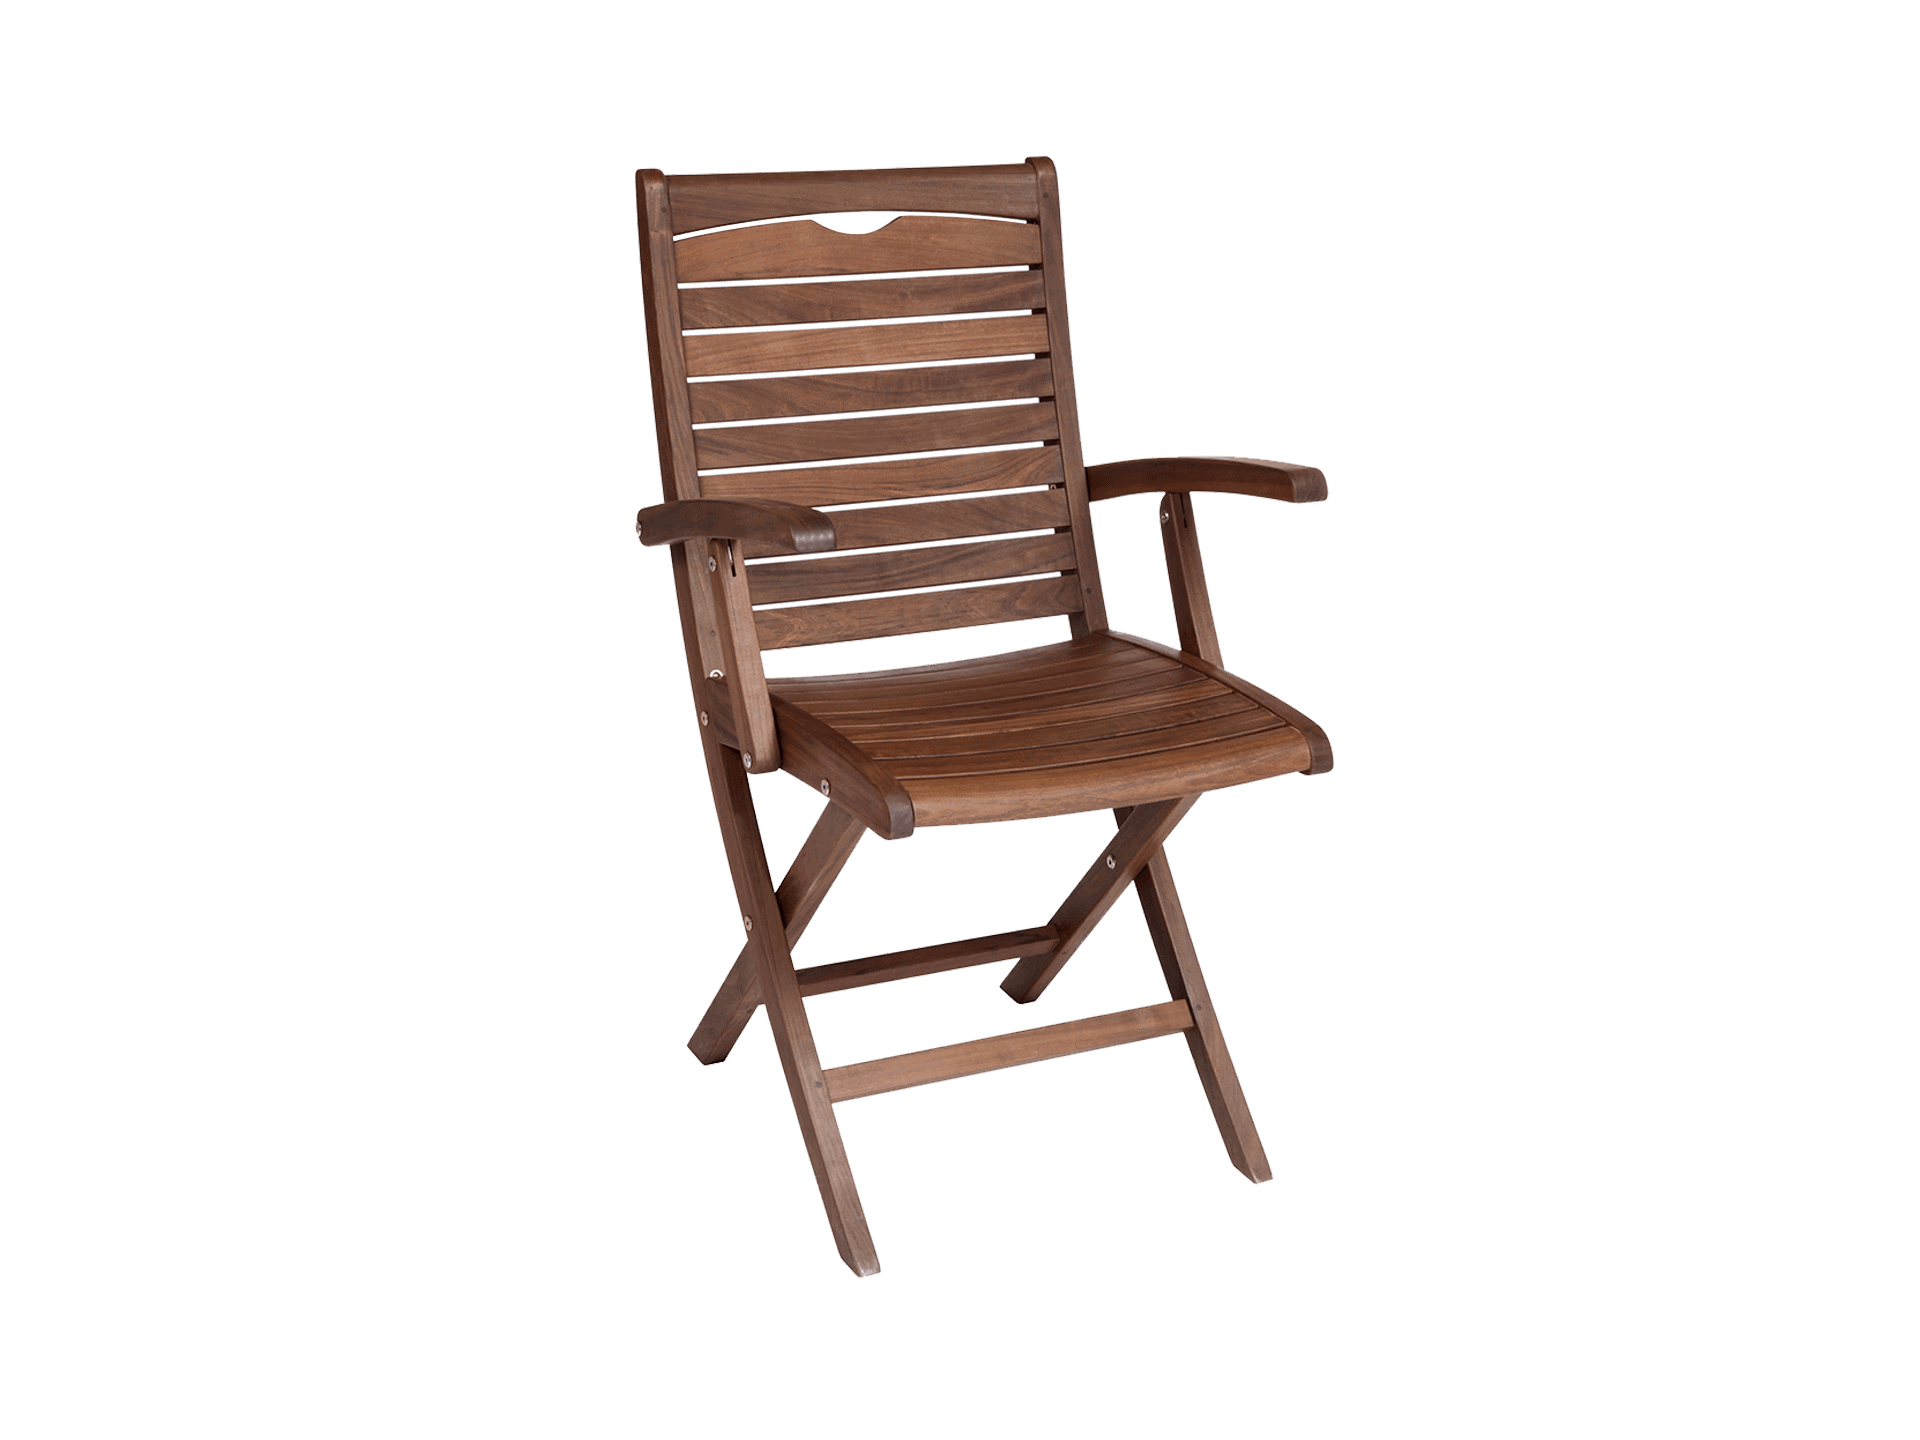 Topaz Folding Chair (lower Arms, Wider Seat)